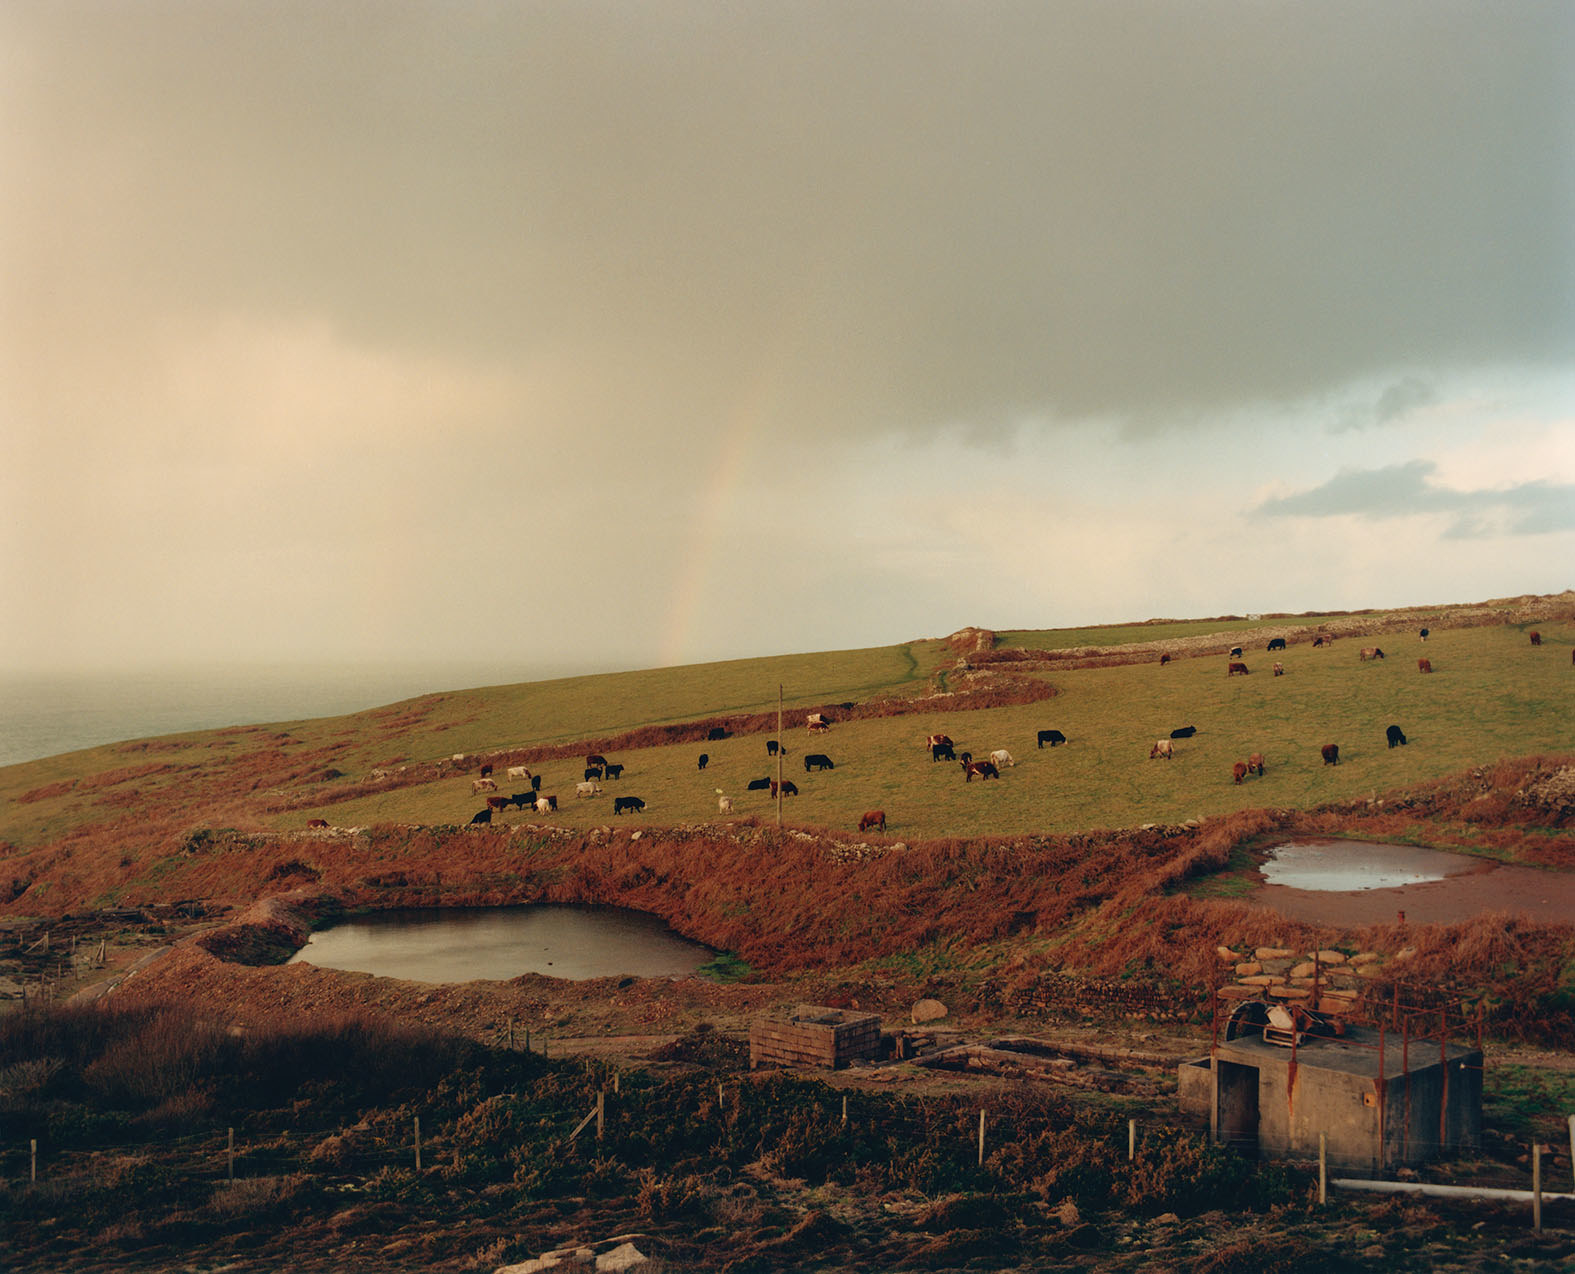 A scene showing cows grazing on a small green hill alongside a flowing body of water